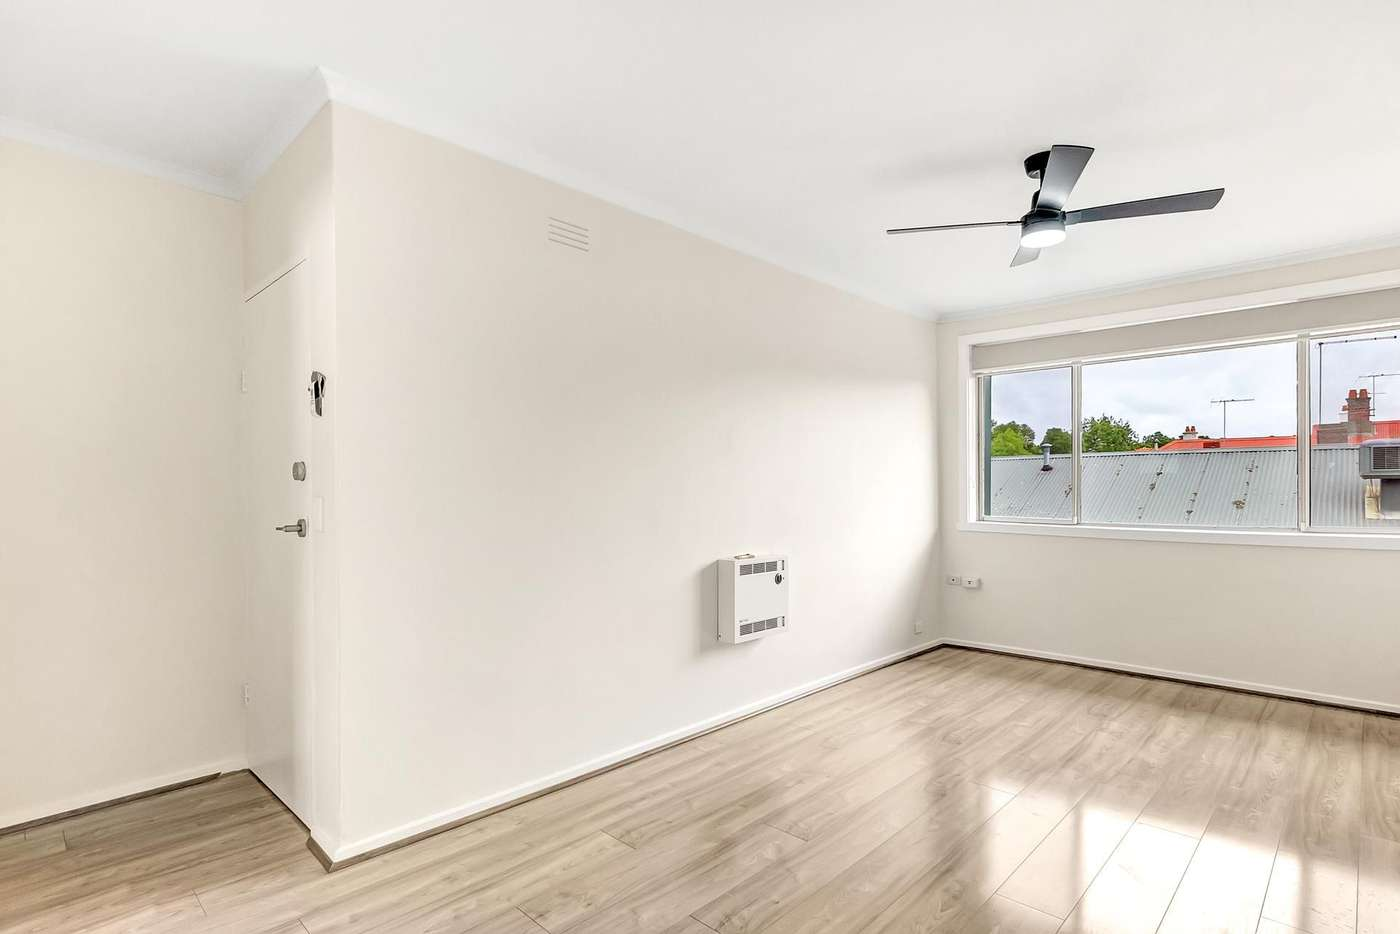 Main view of Homely house listing, 8/88 Victoria Street, Williamstown VIC 3016